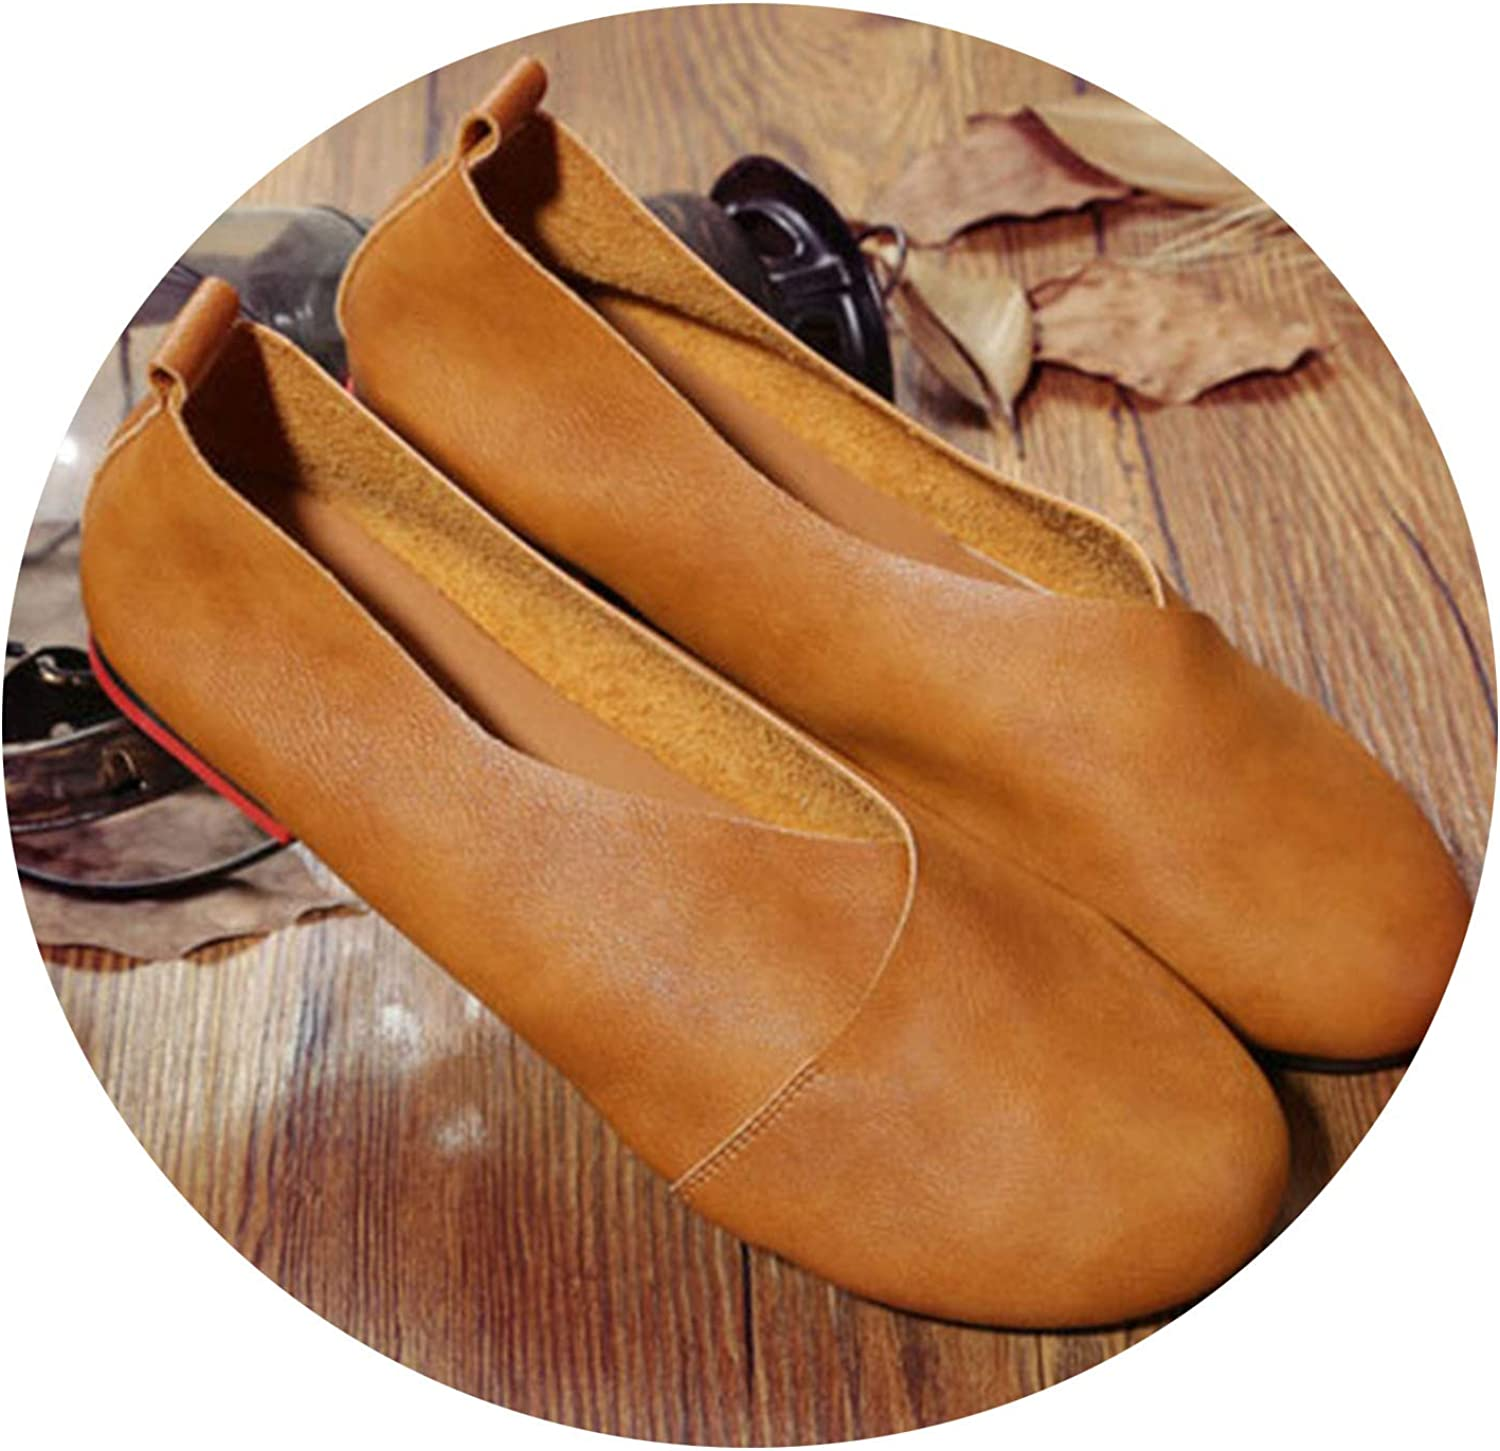 Don't mention the past 2019 Genuine Leather Flat shoes Woman Hand-Sewn Leather Loafers Cowhide Flexible Spring Casual shoes,Brown,8.5